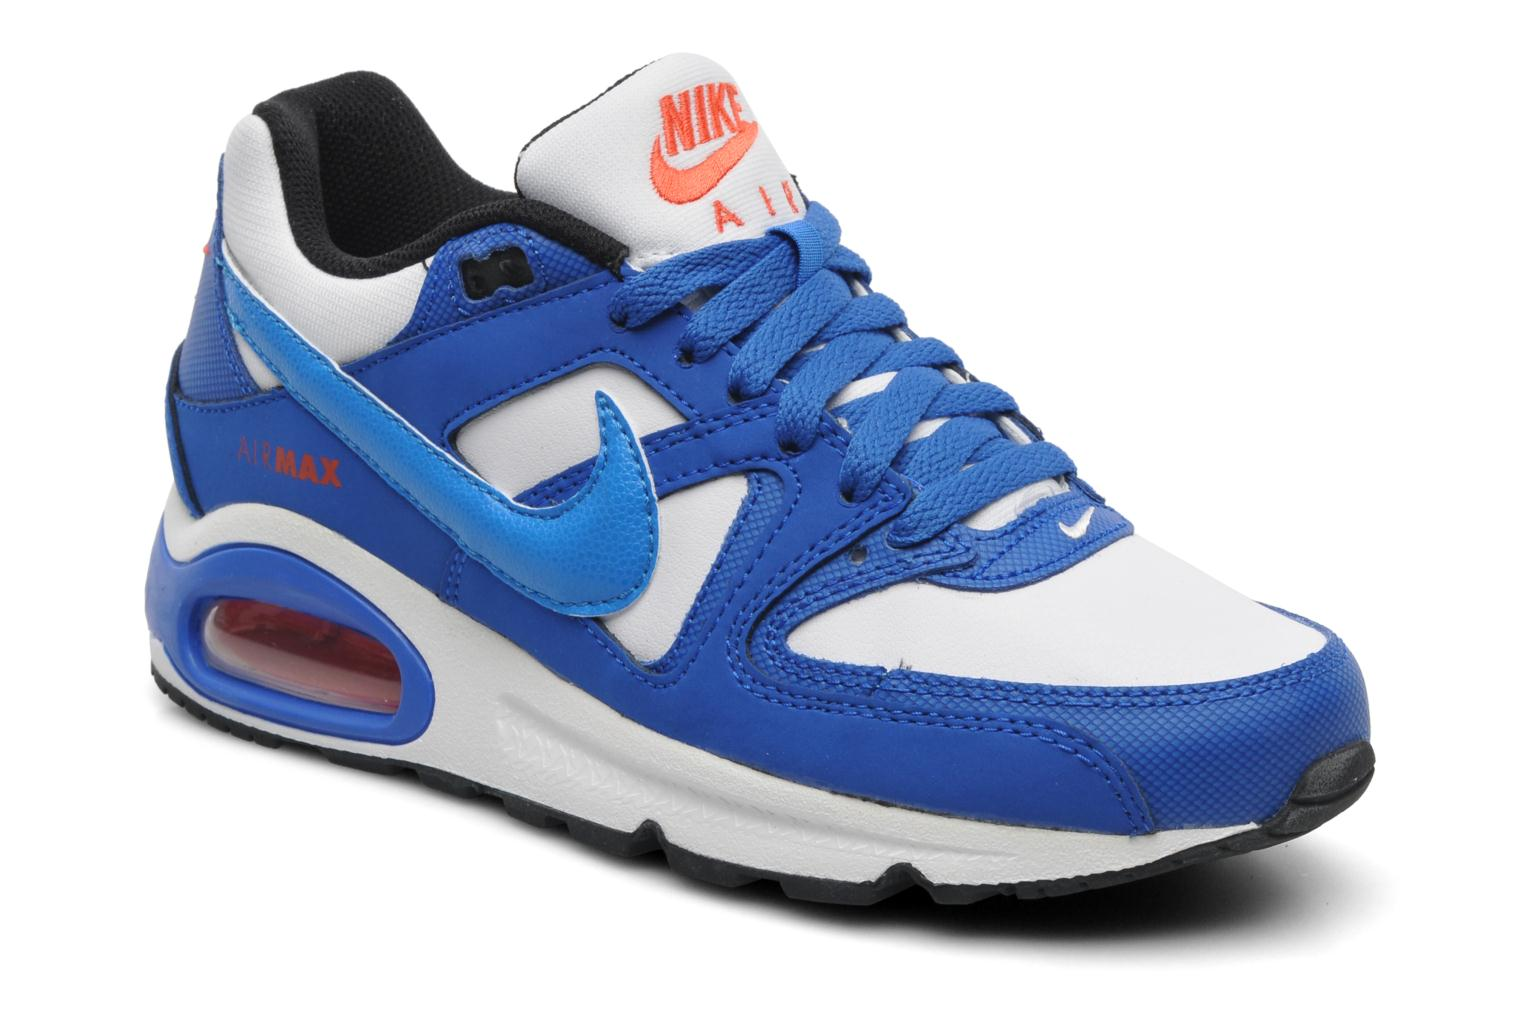 Air Max Command (GS) WHITEPHT BL-HYPR CBLT-TM ORNG